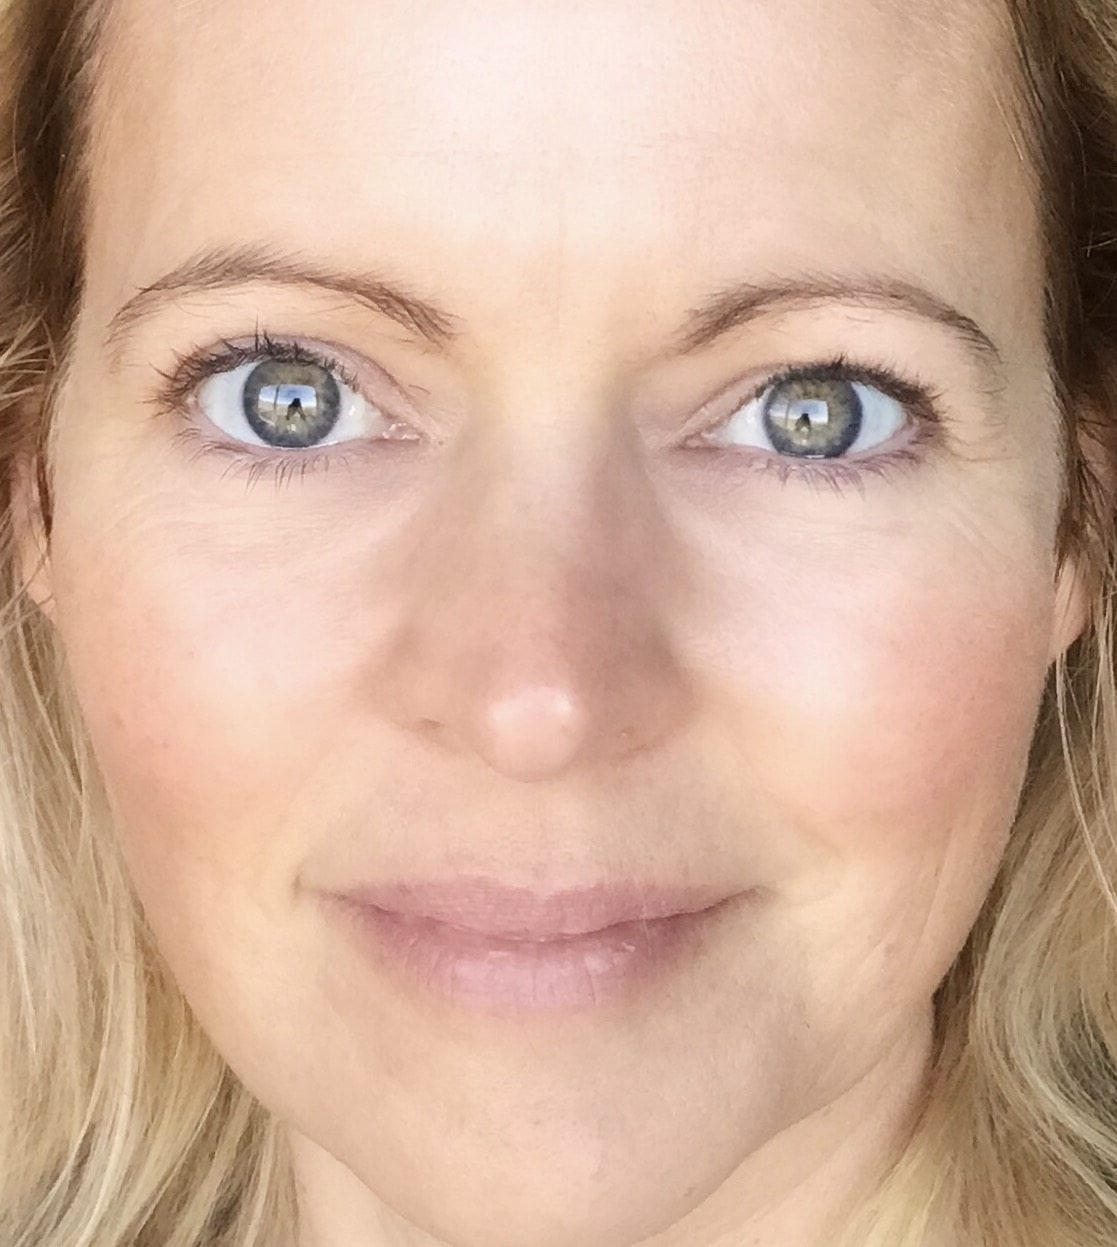 The at home facial. How to achieve polished, glowing results!